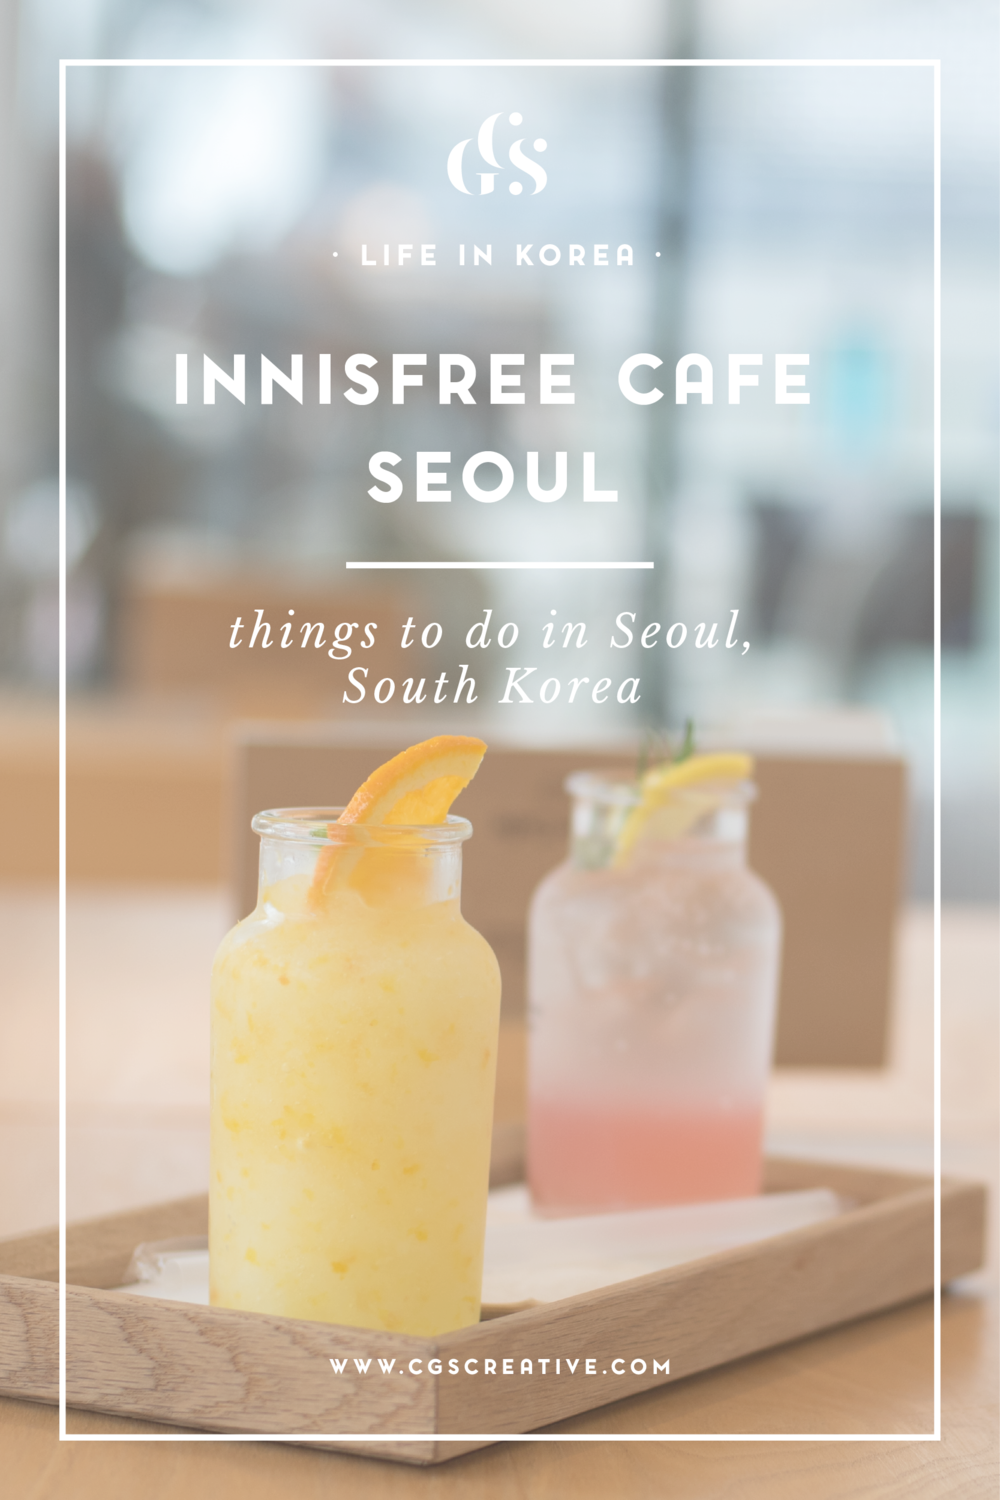 Innisfree Cafe Seoul South Korea